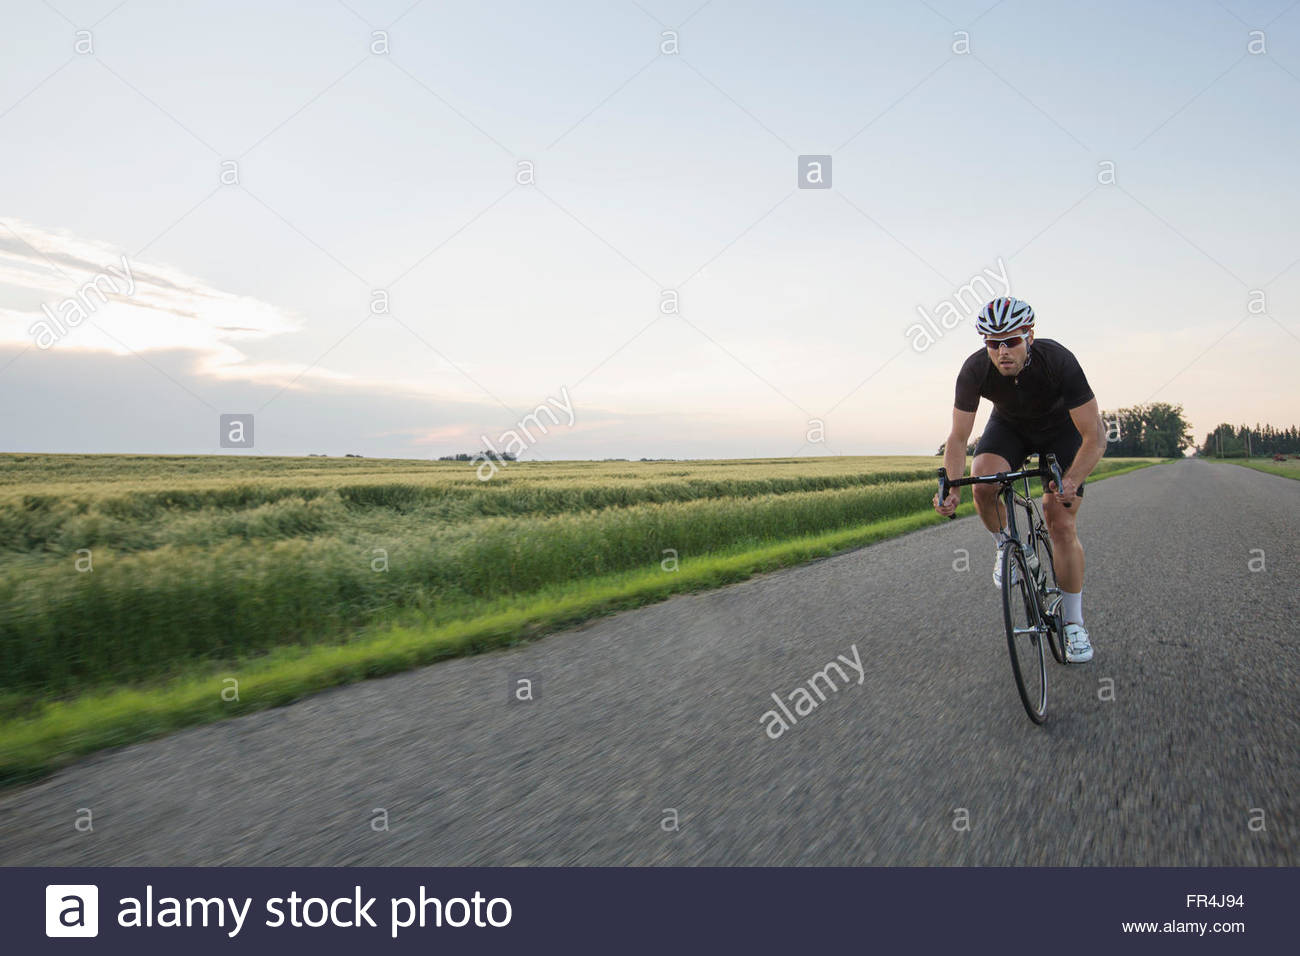 long distance bicyclist riding on highway - Stock Image